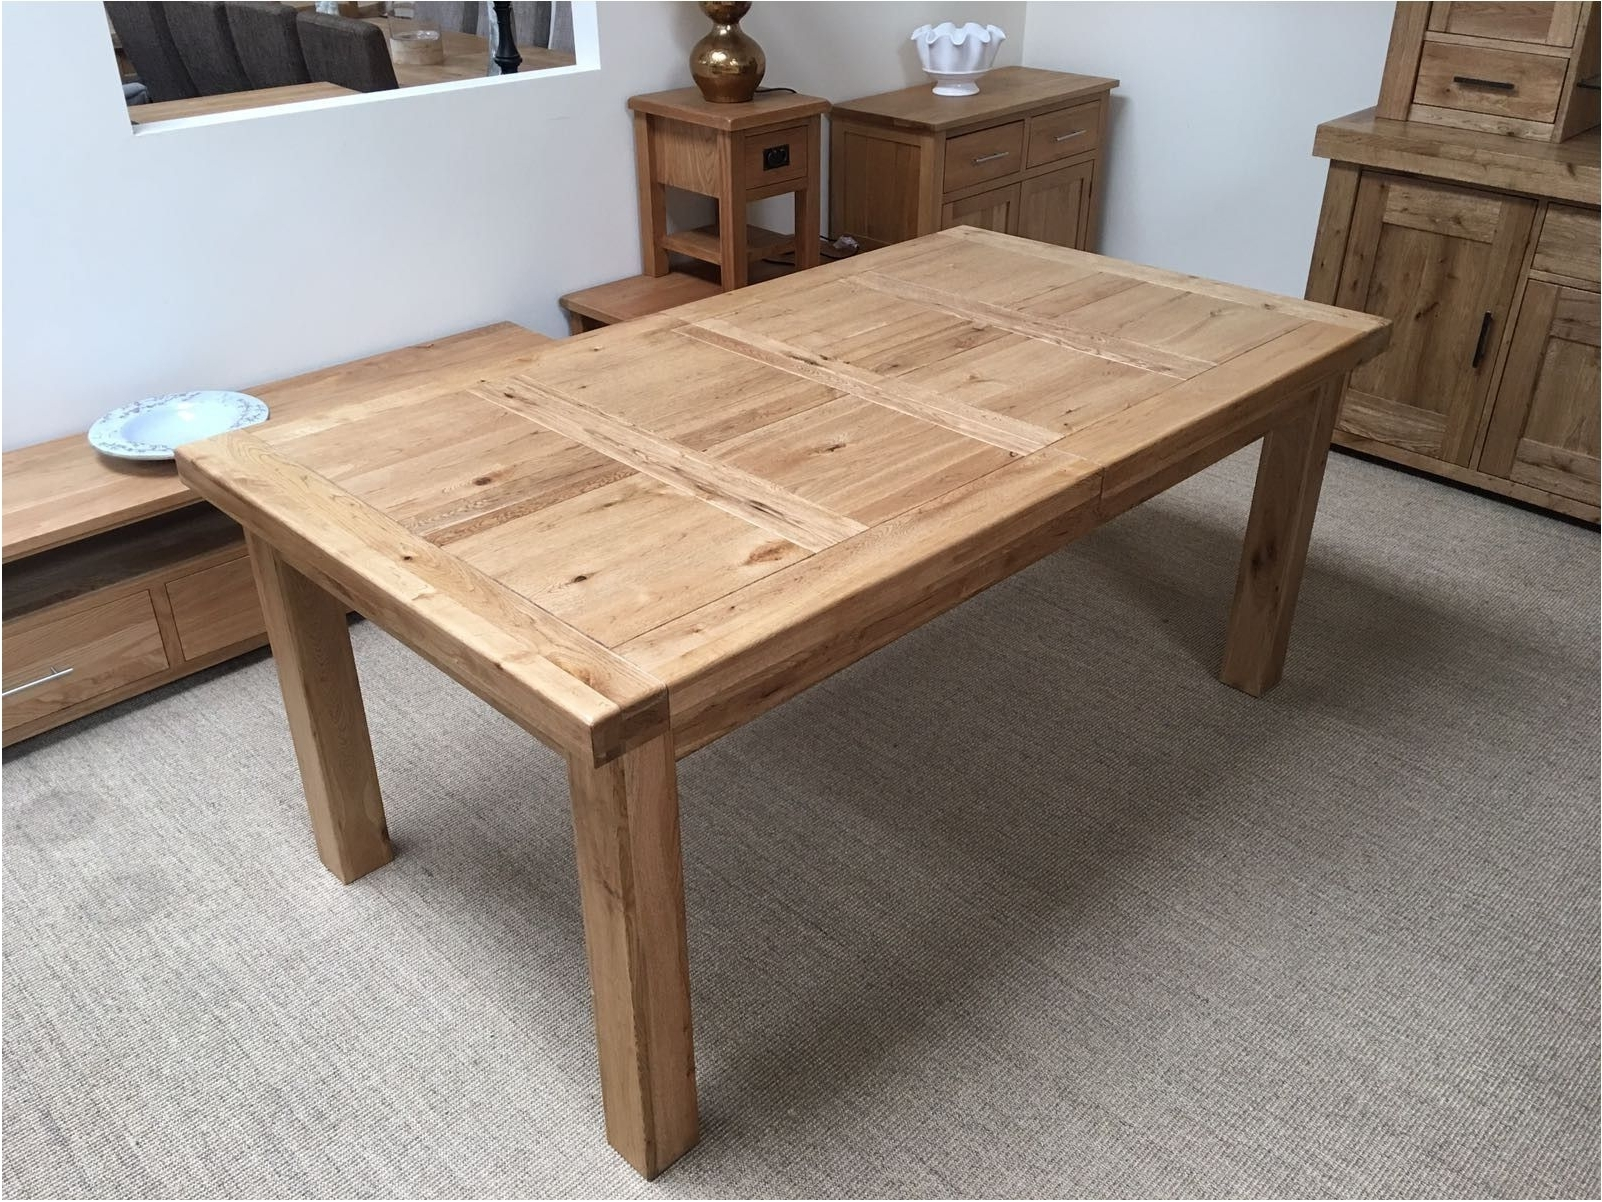 Fashionable Extending Solid Oak Dining Tables With Astounding Oxford Solid Oak Extending Dining Table Oak Furniture (View 3 of 25)